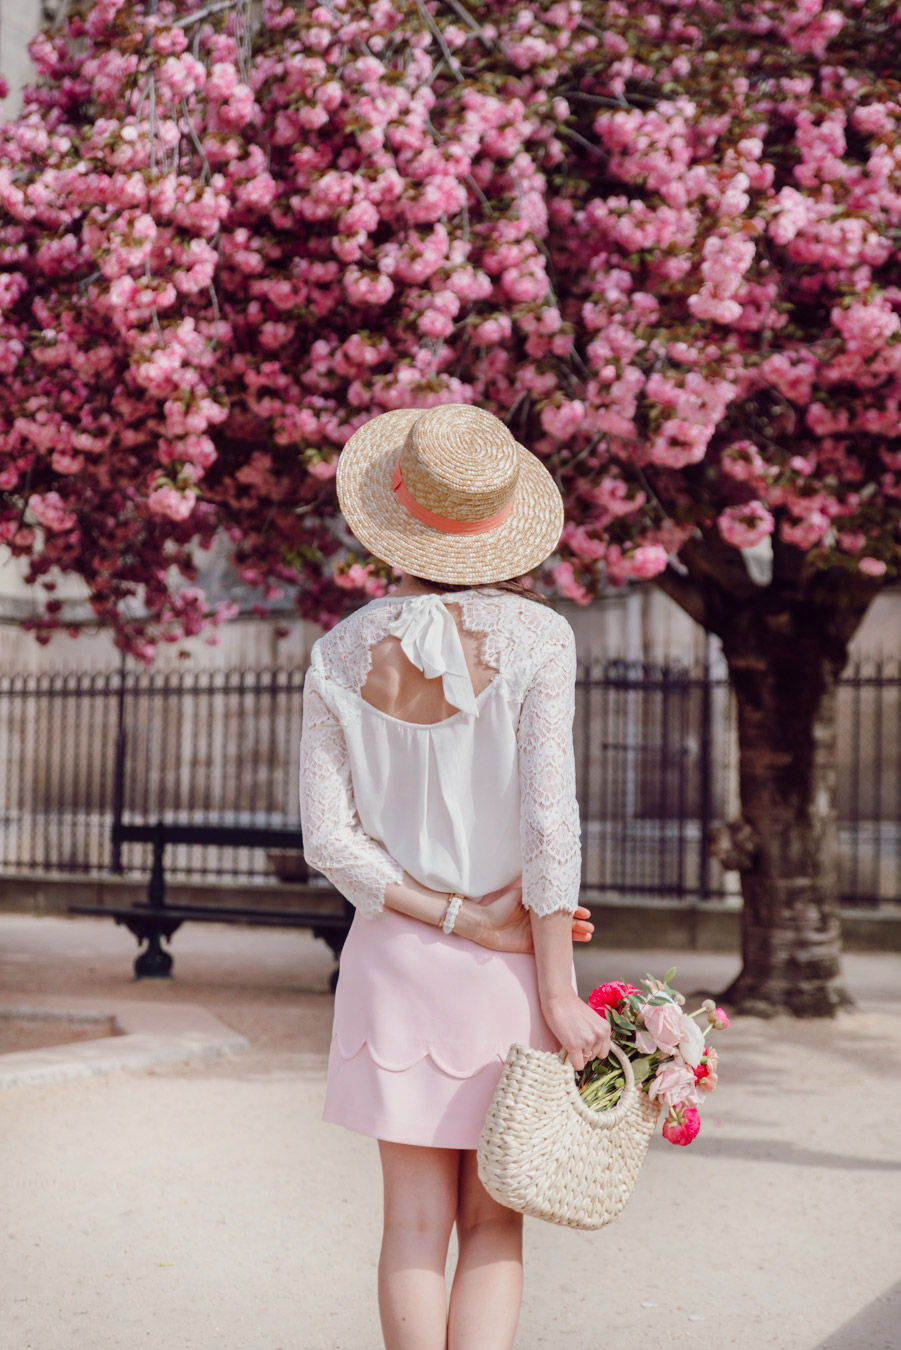 Blog-Mode-And-The-City-Looks-Notre-Dame-arbre-en-fleurs-5